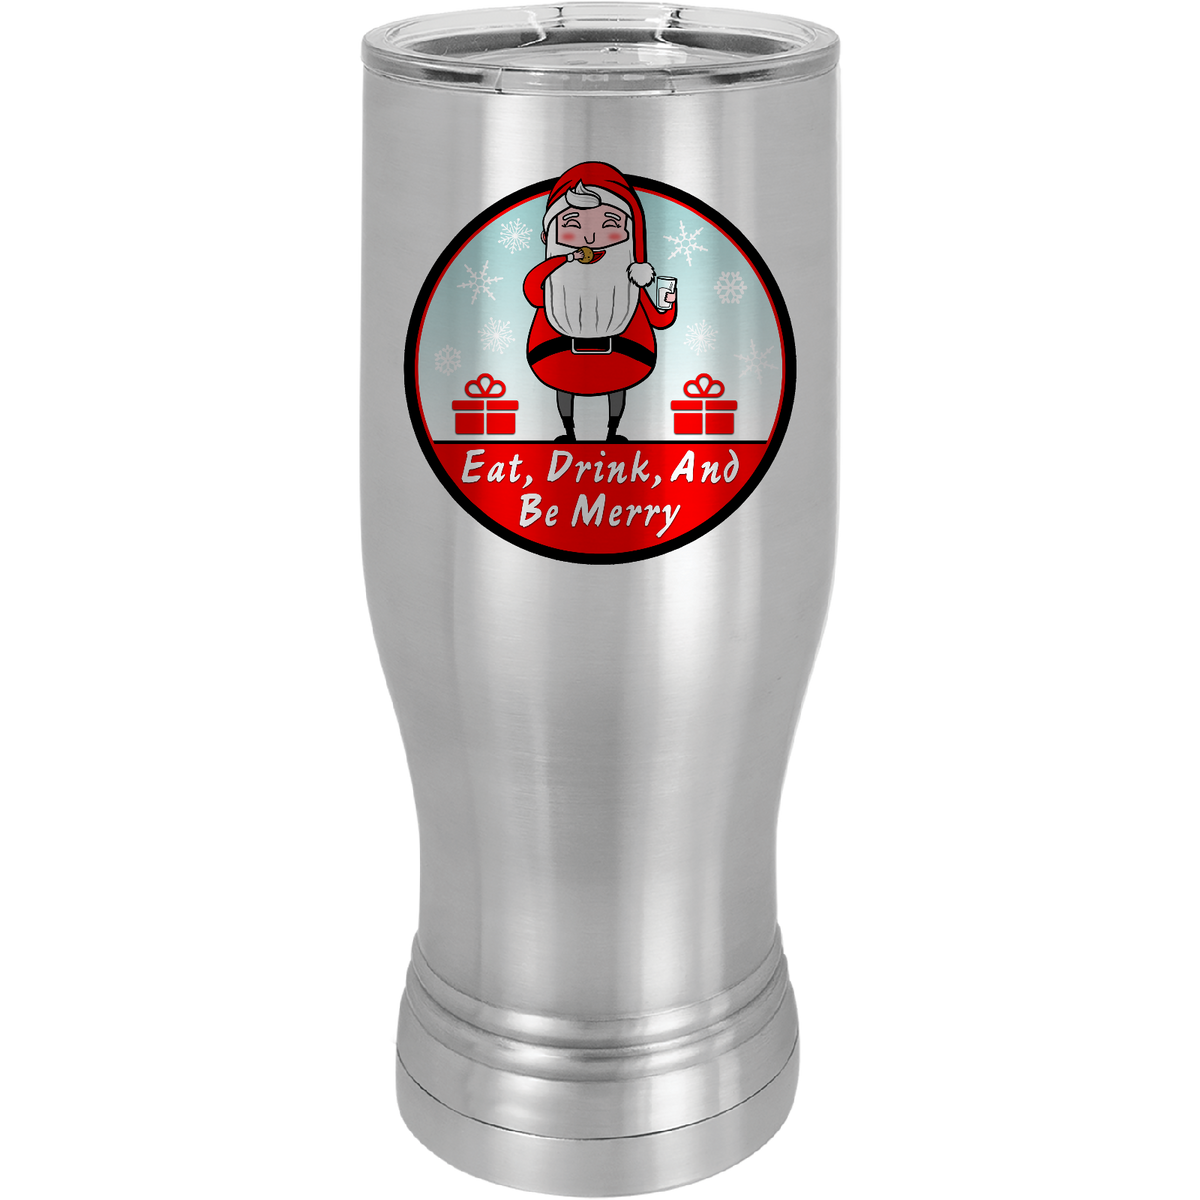 Eat drink and be merry - 20oz. Pilsner with Clear Lid